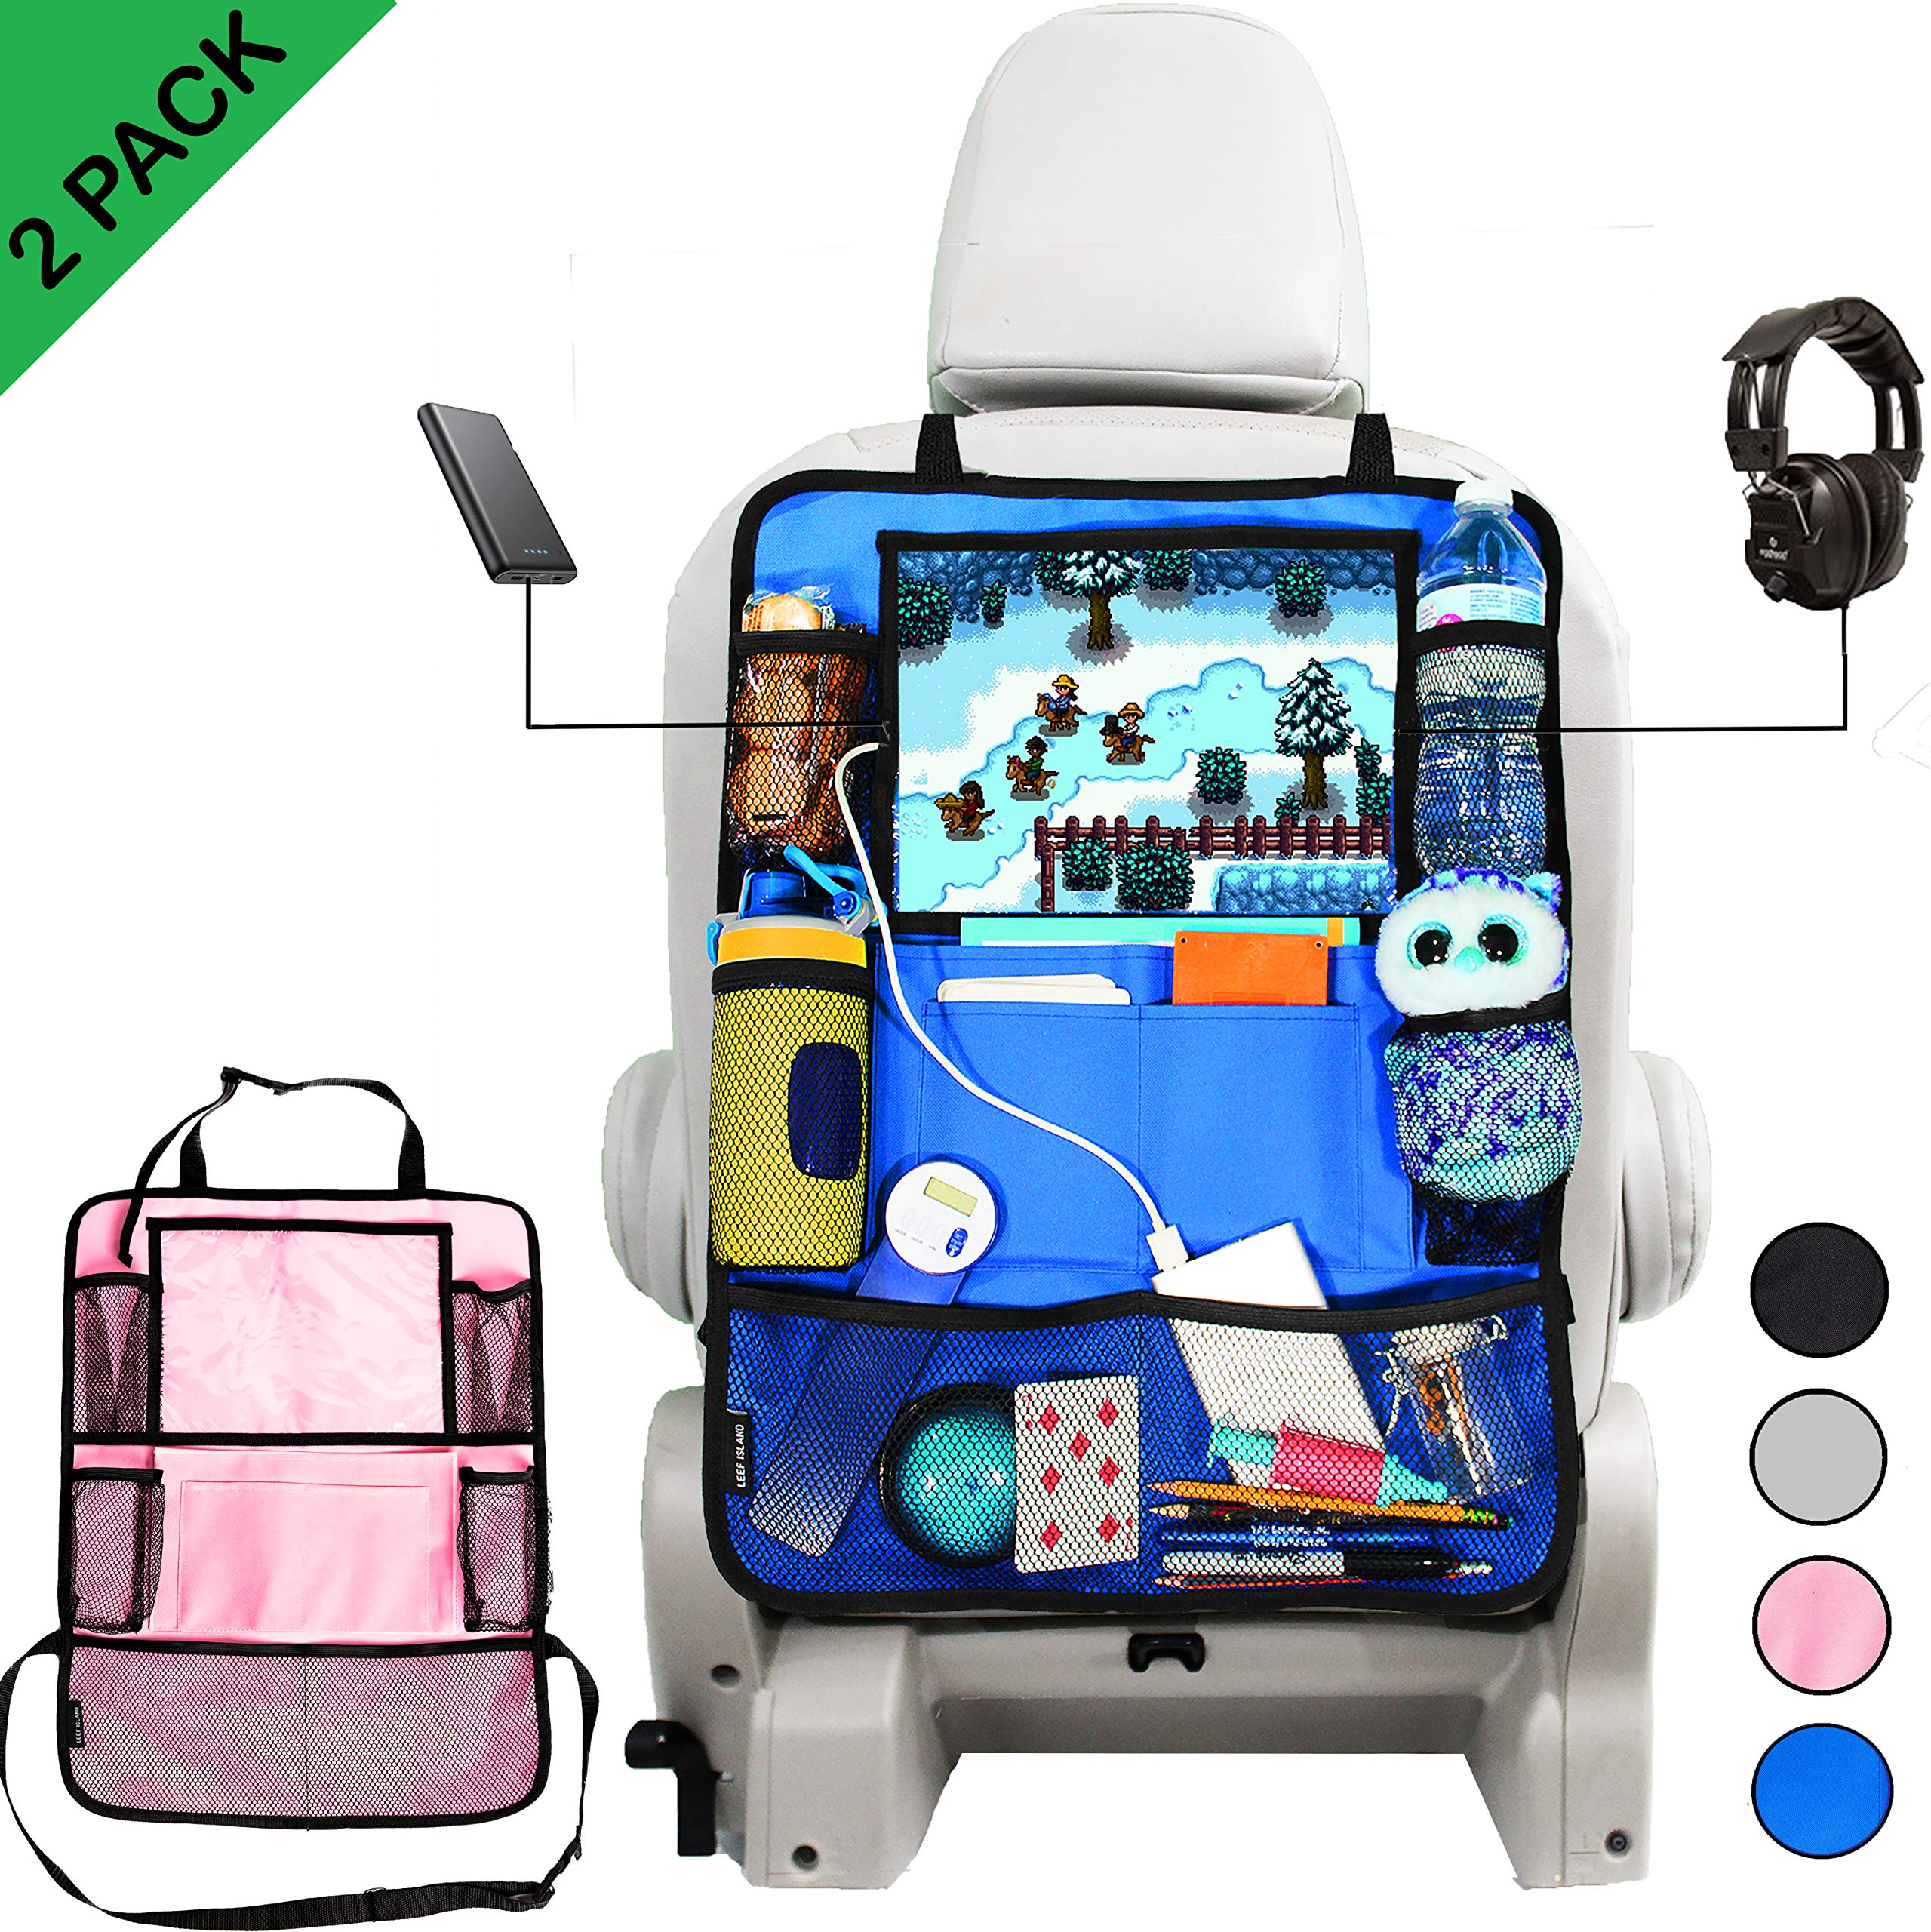 Car Backseat Organizer 10 Storage Pockets including Touchscreen Tablet Holder with 2 Cable slots, Cupholders, Declutter Toys Snacks Books, Kick Mat Seat Protector, For All Ages 2 Pack Pink/Blue by Leef Island